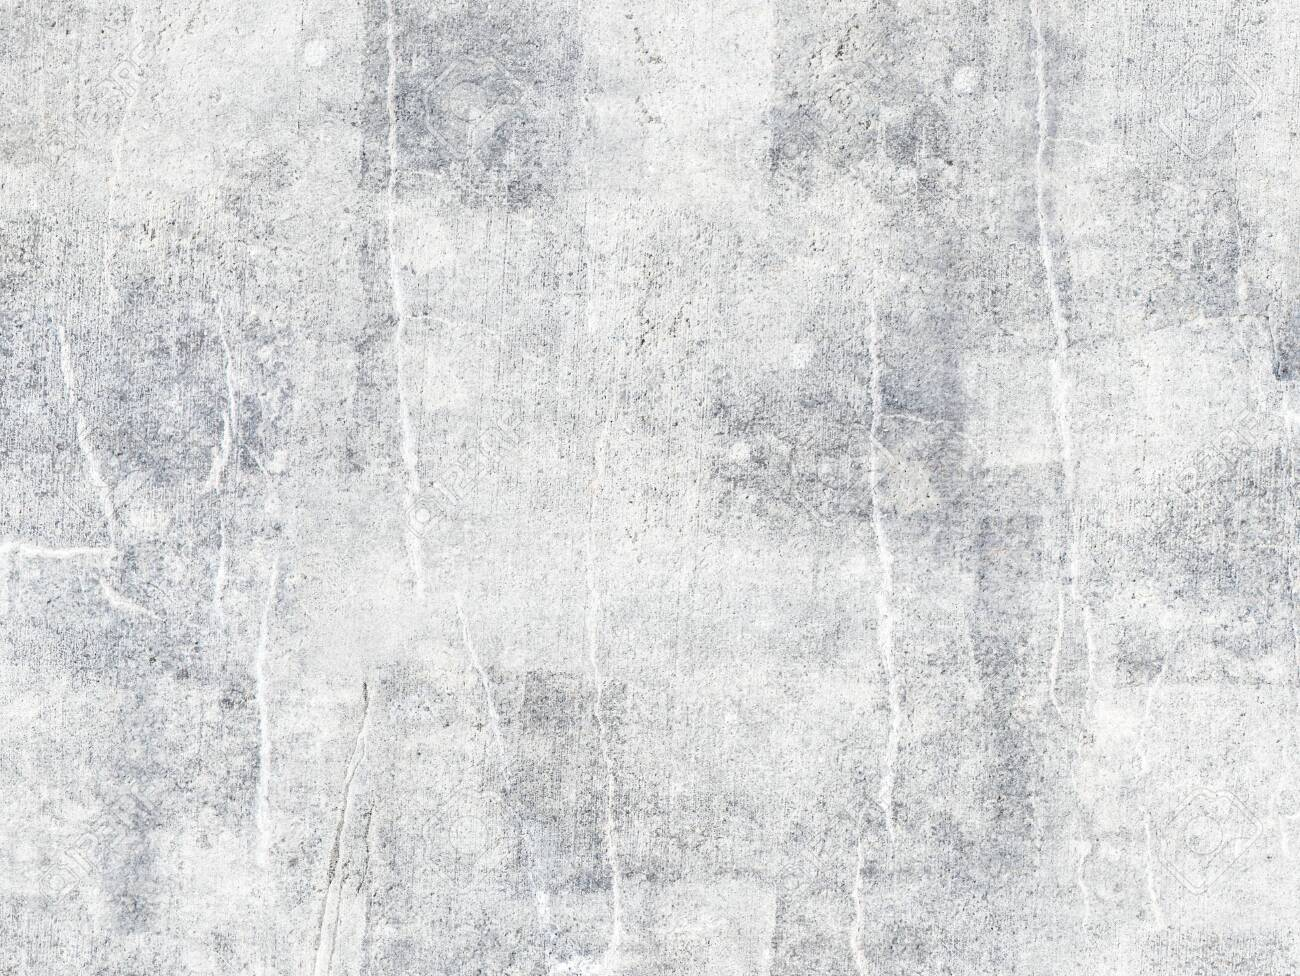 Concrete wall texture. Abstract gray background. - 137870128